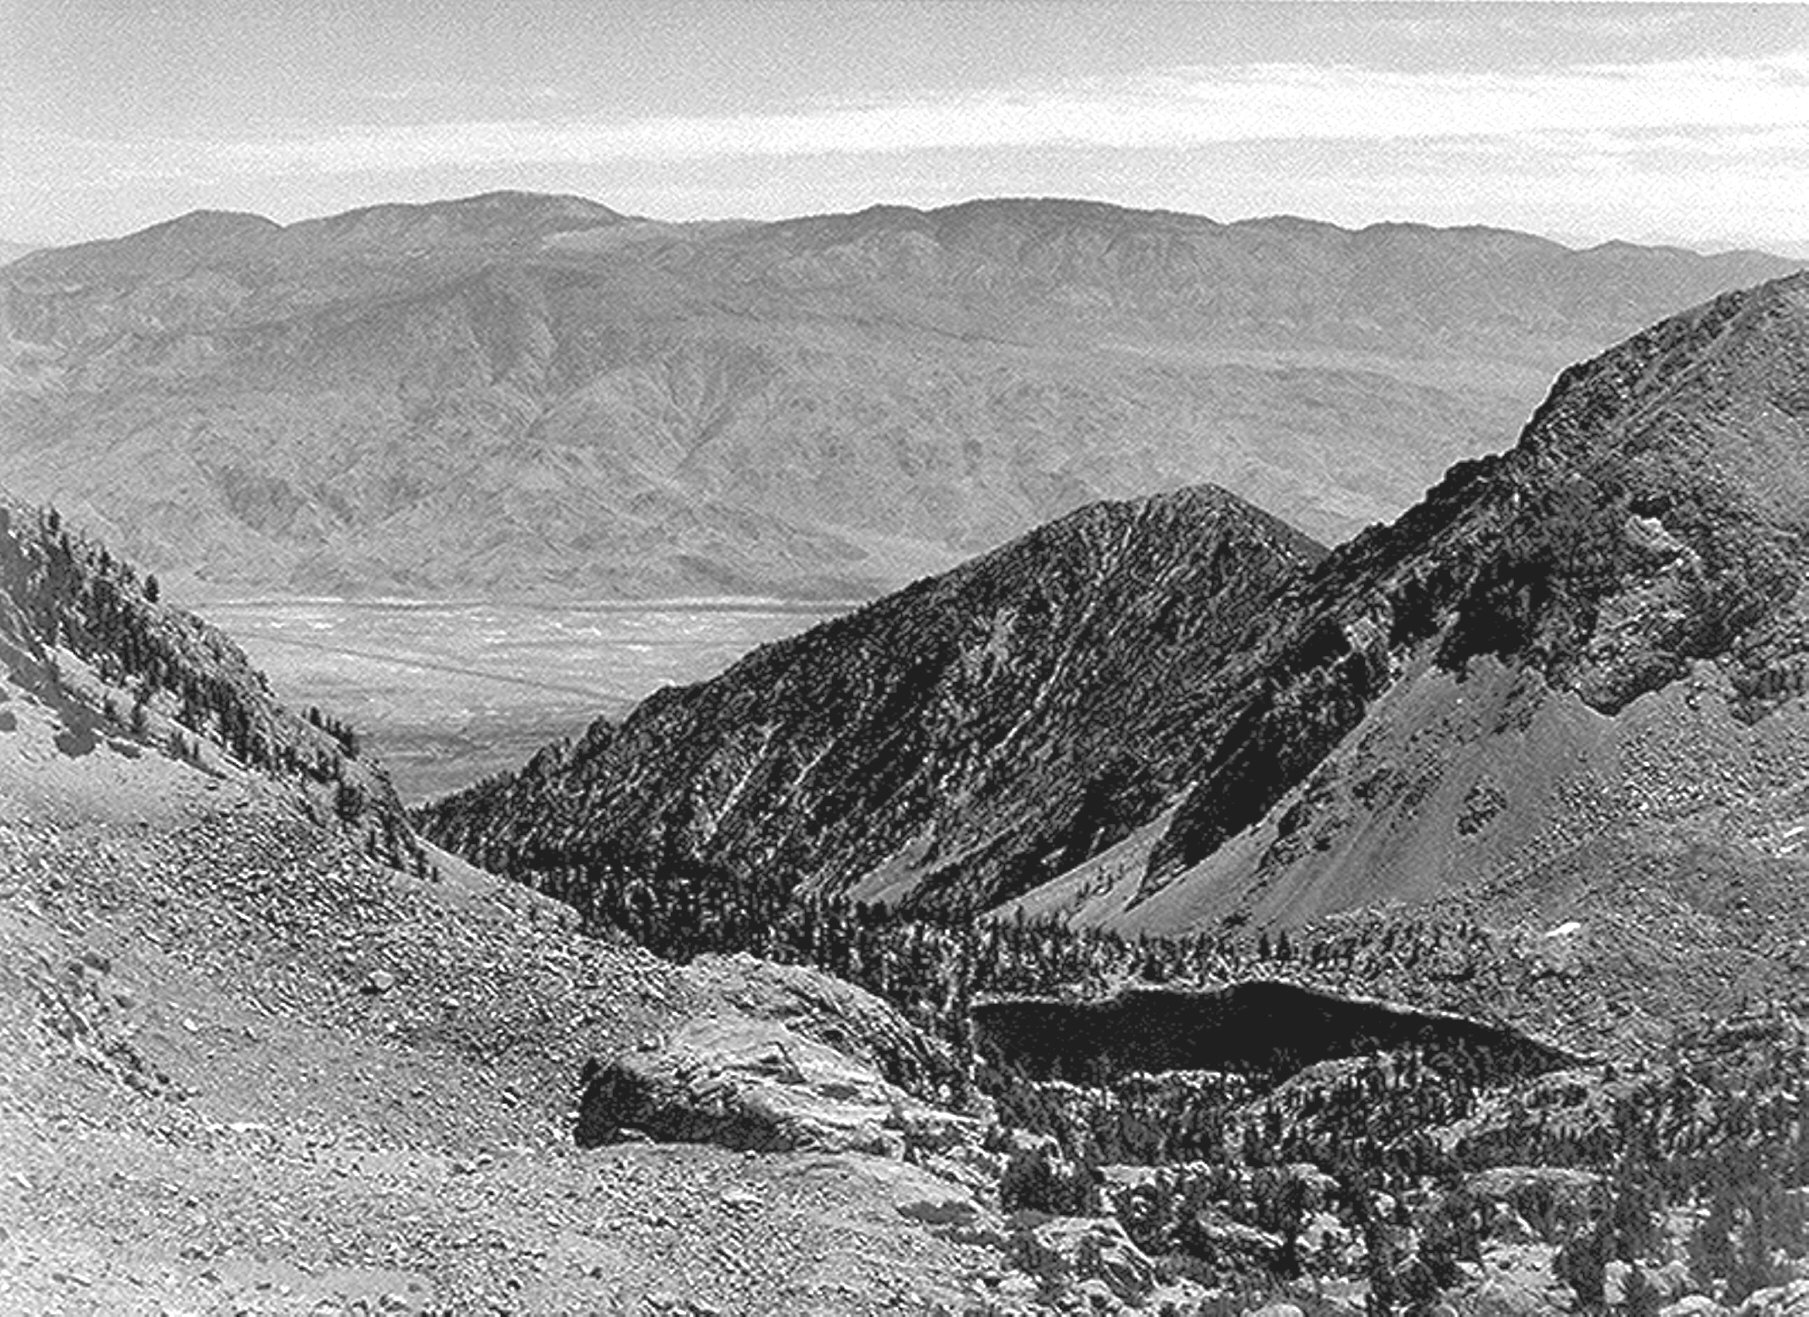 Owens valley from sawmill pass ansel adams pinterest for Ansel adams mural project 1941 to 1942